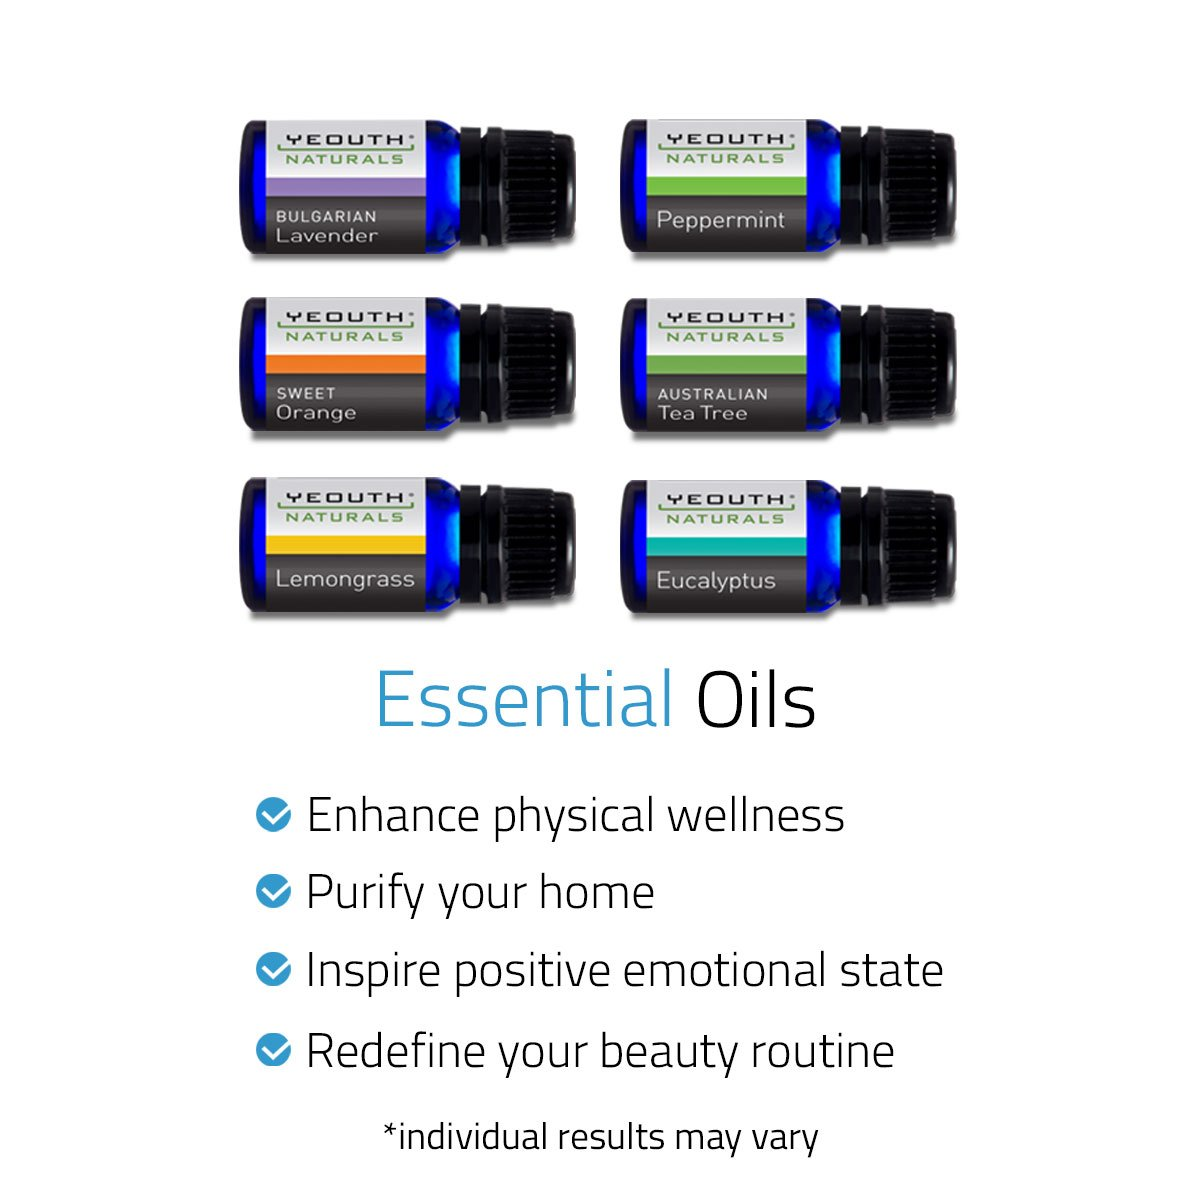 Pure Essential Oils | Aromatherapy Set of 6: Australian Tea Tree Oil, Peppermint Oil, Eucalyptus Oil, Lavender Oil, Sweet Orange Oil, Lemongrass Oil